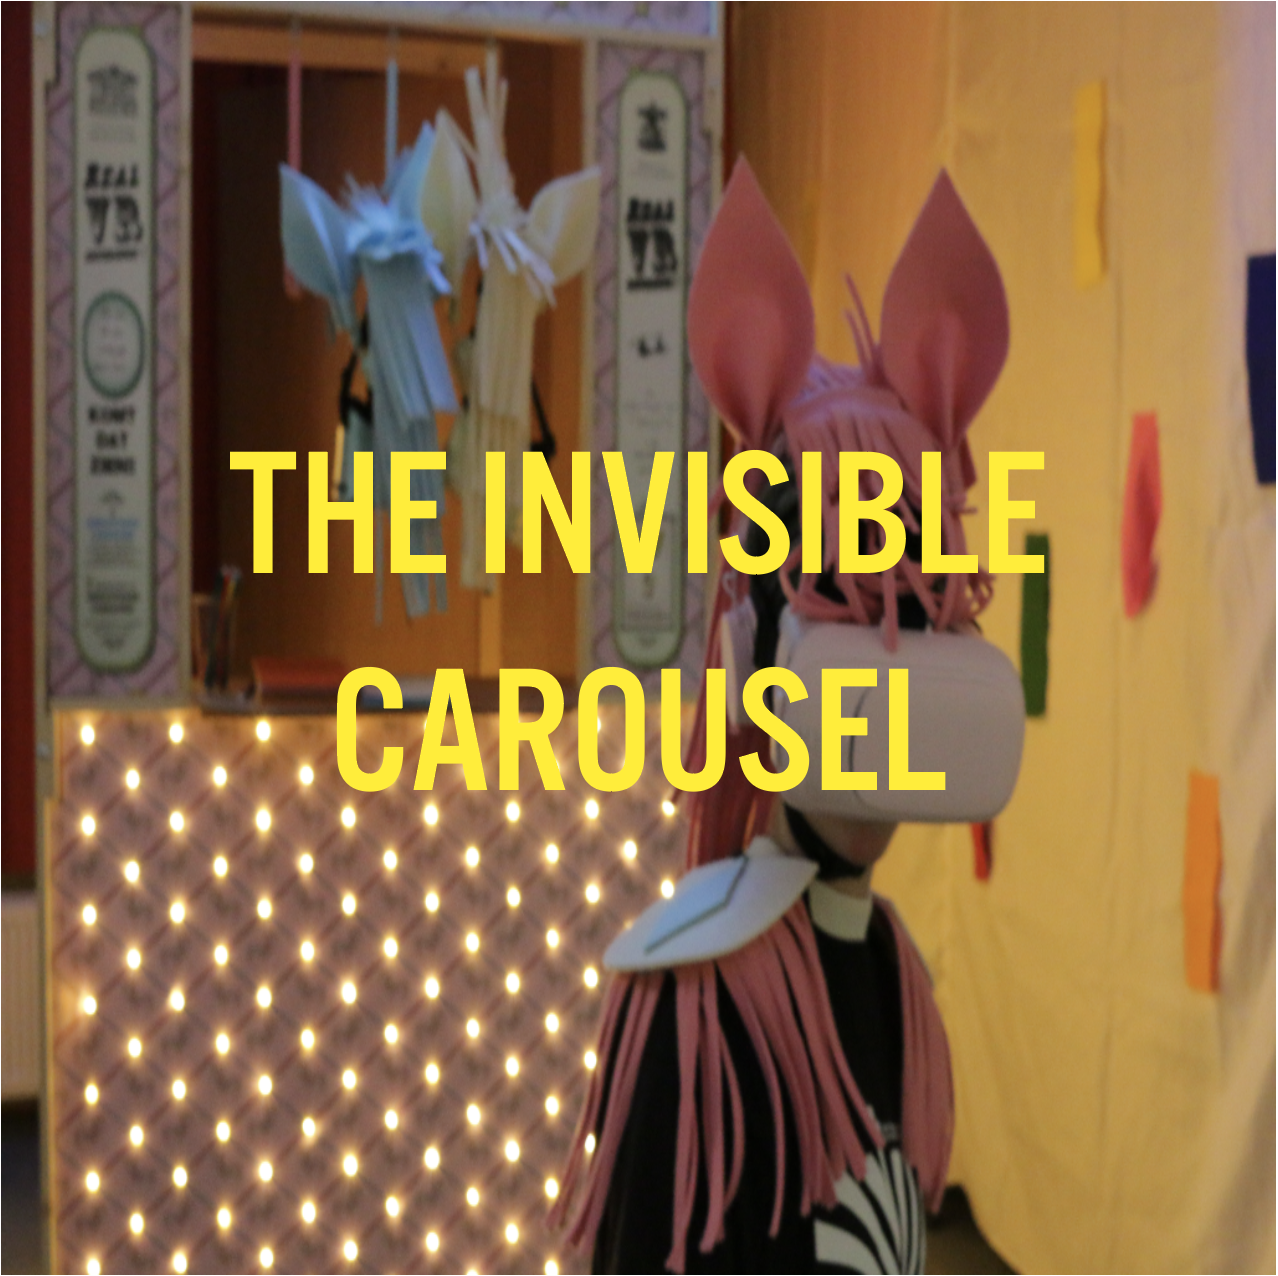 The Invisible Carousel.png